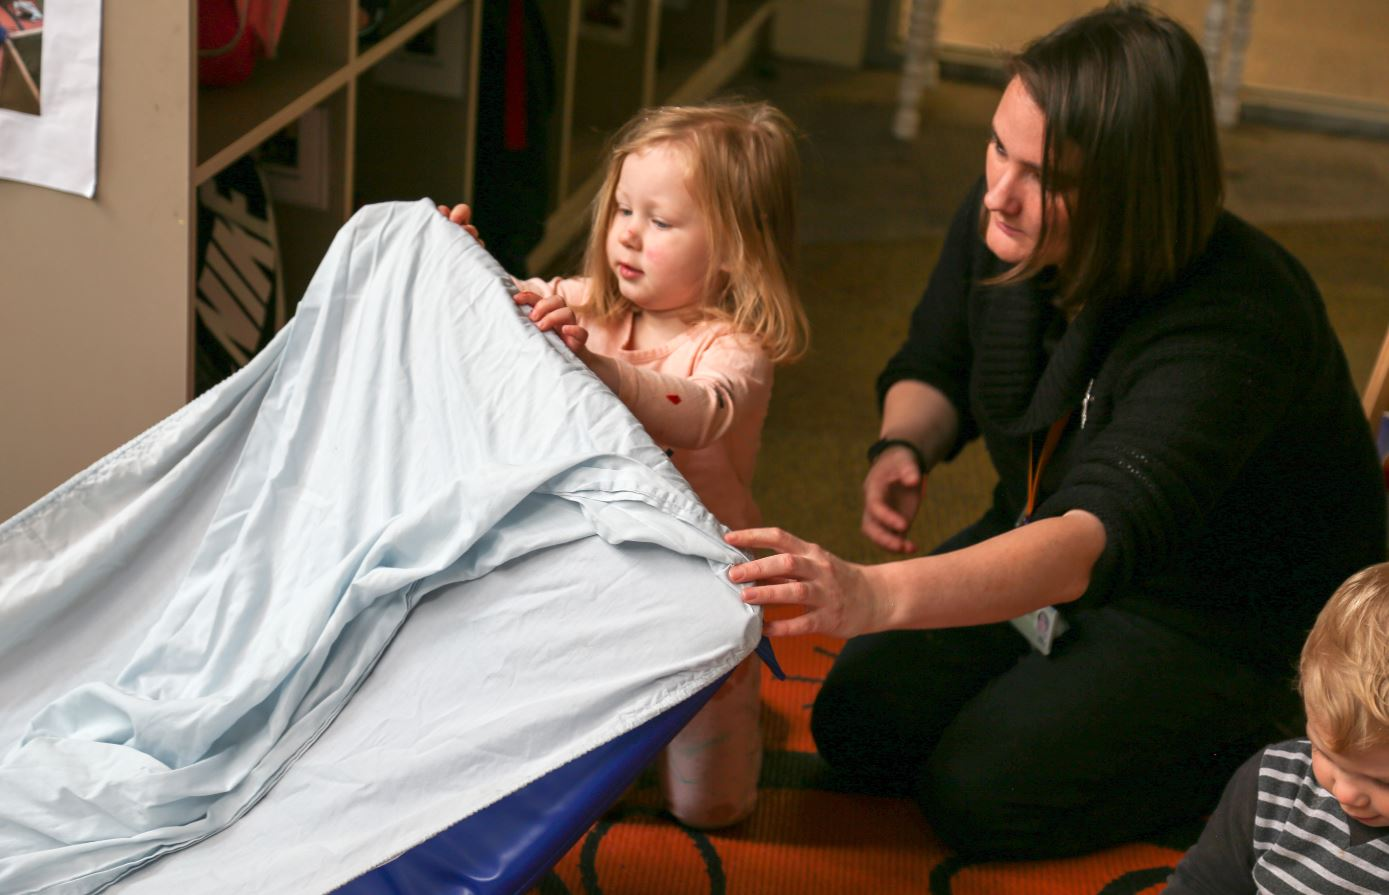 young child and educator prepare bedding